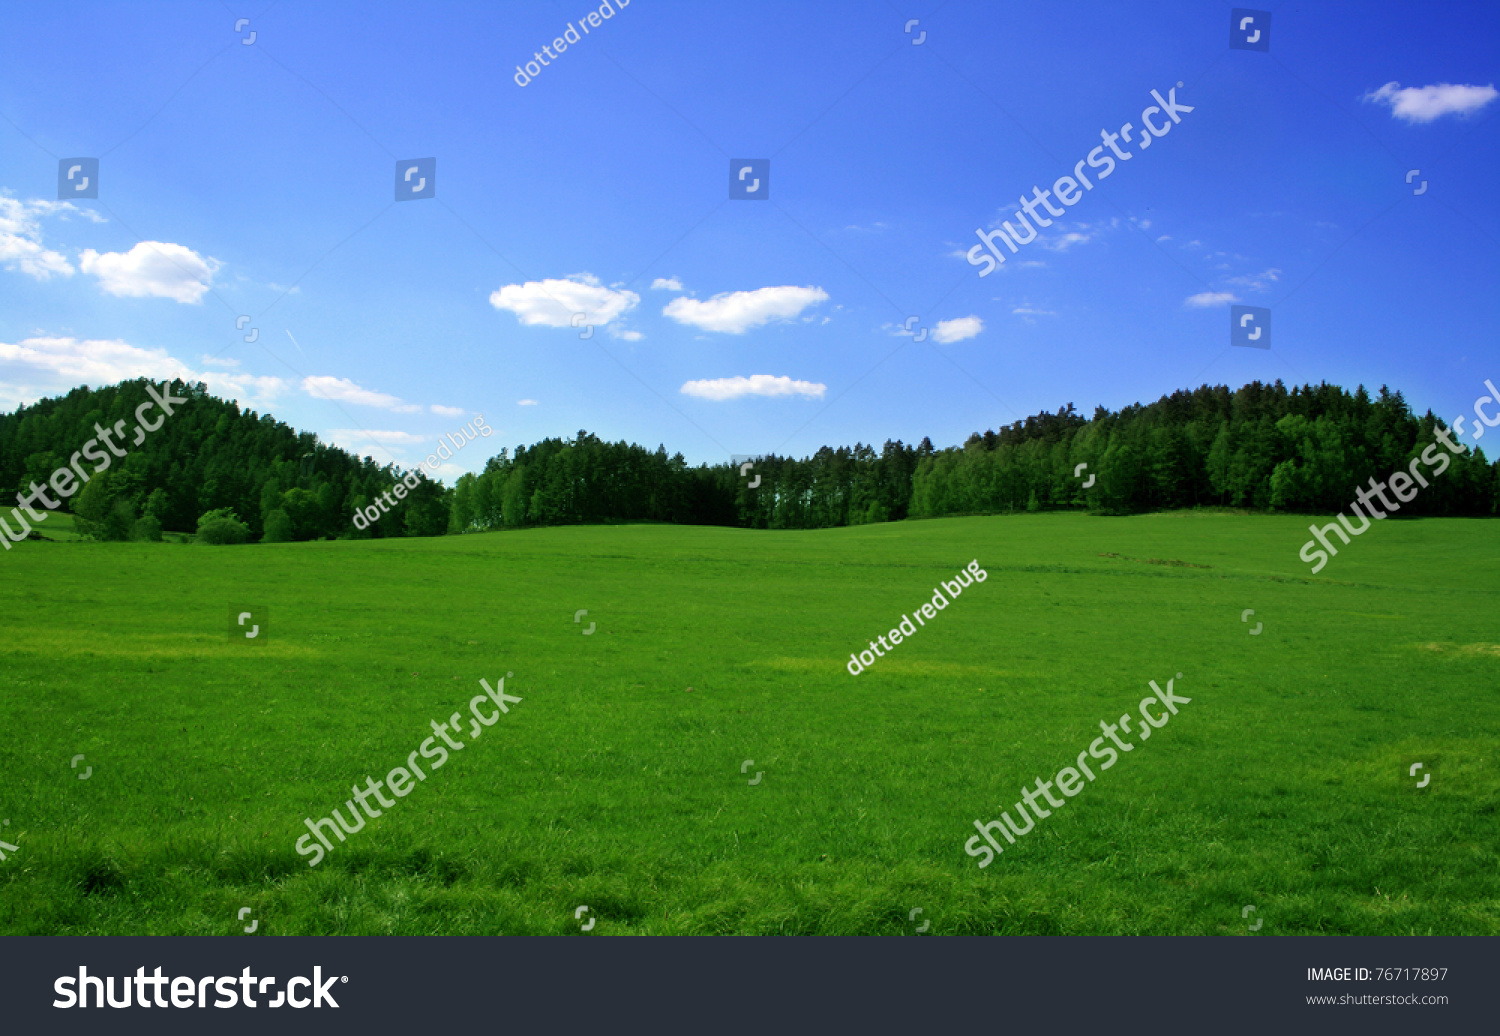 Green Grass Blue Sky Trees | www.imgkid.com - The Image ...